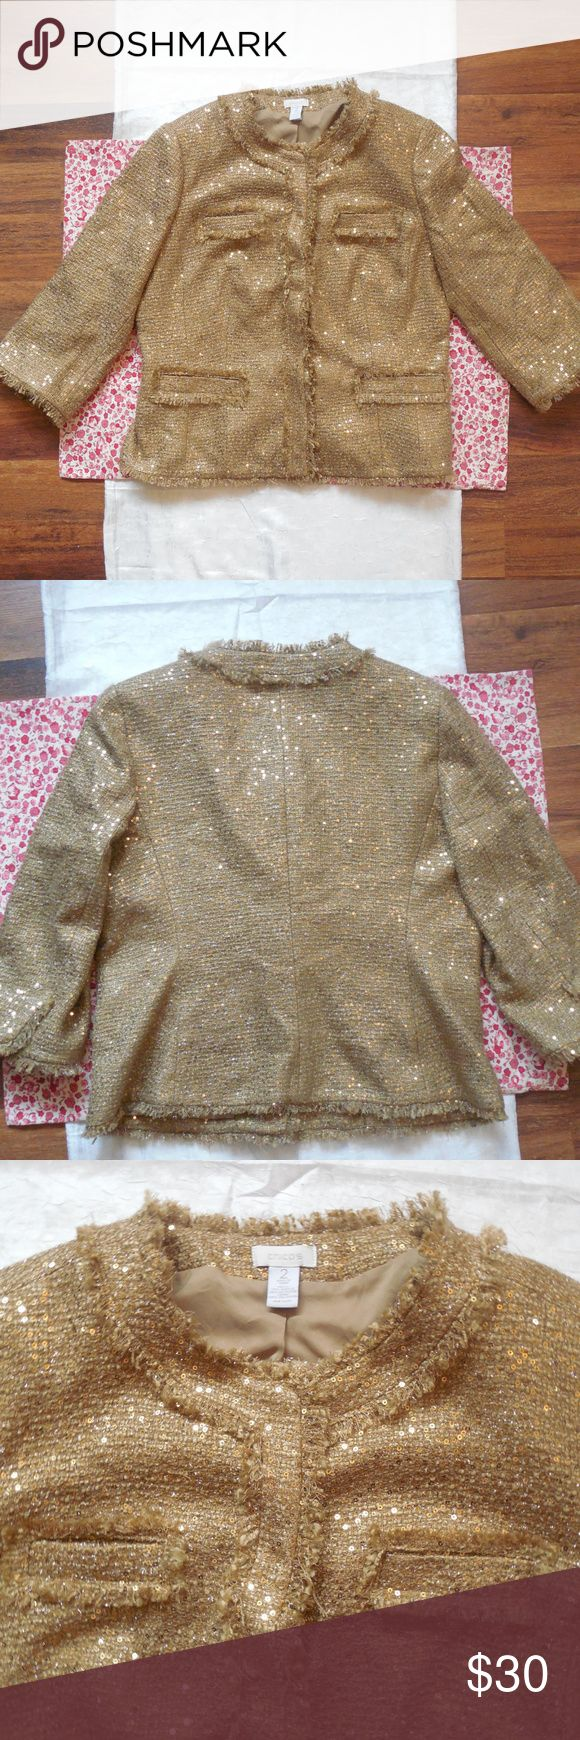 Chico's Gold Blazer Jacket - Metallic Boucle Knit Lovely women's sparkly gold blazer/jacket by in Chico's size 2 (Large).  3/4 sleeves  underarm to underarm: 22 inches length: 24 inches Chico's Jackets & Coats